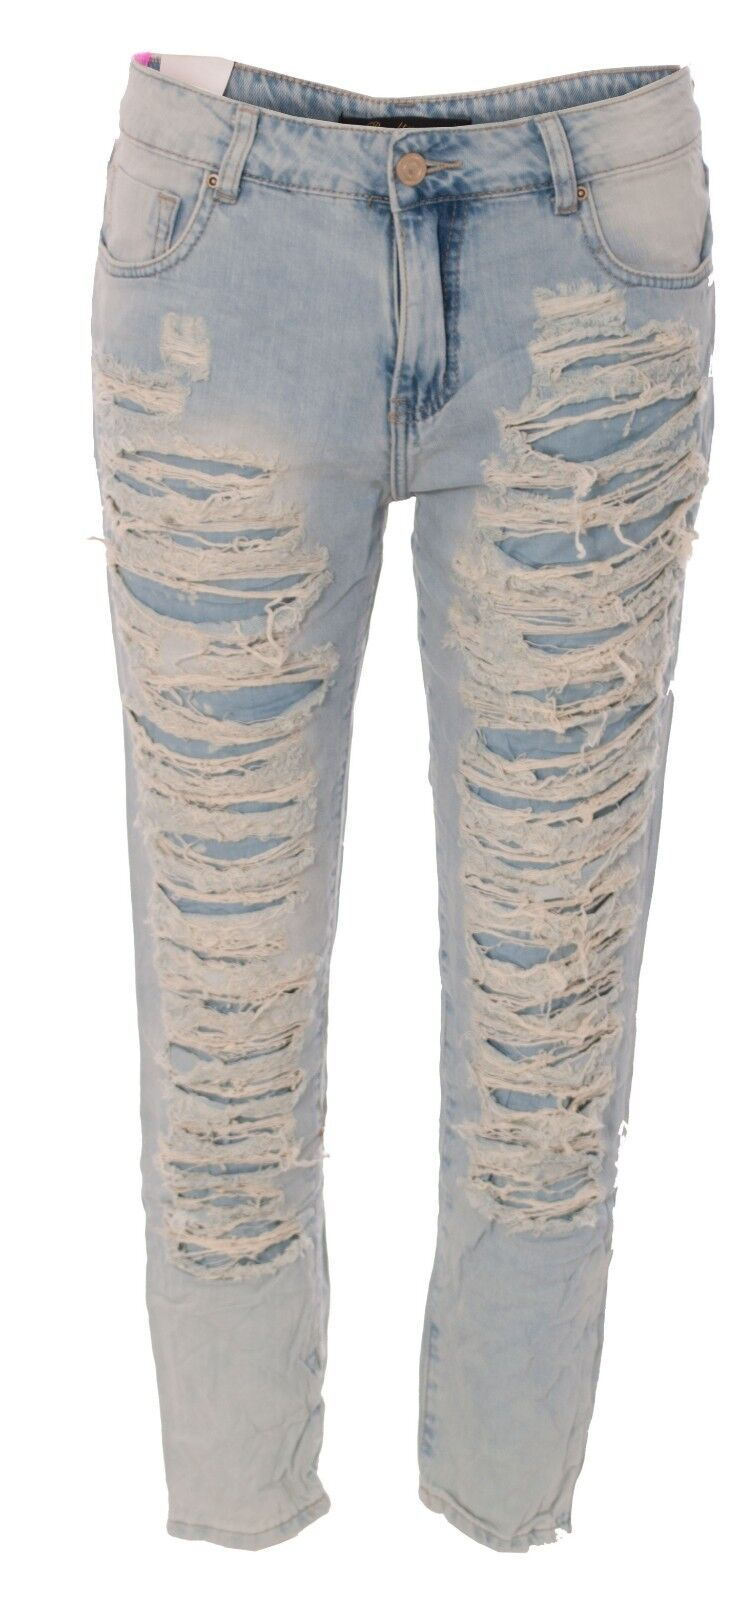 Ladies Ripped Distressed Destroyed Trashed Boyfriend Fit Denim Jeans Straight